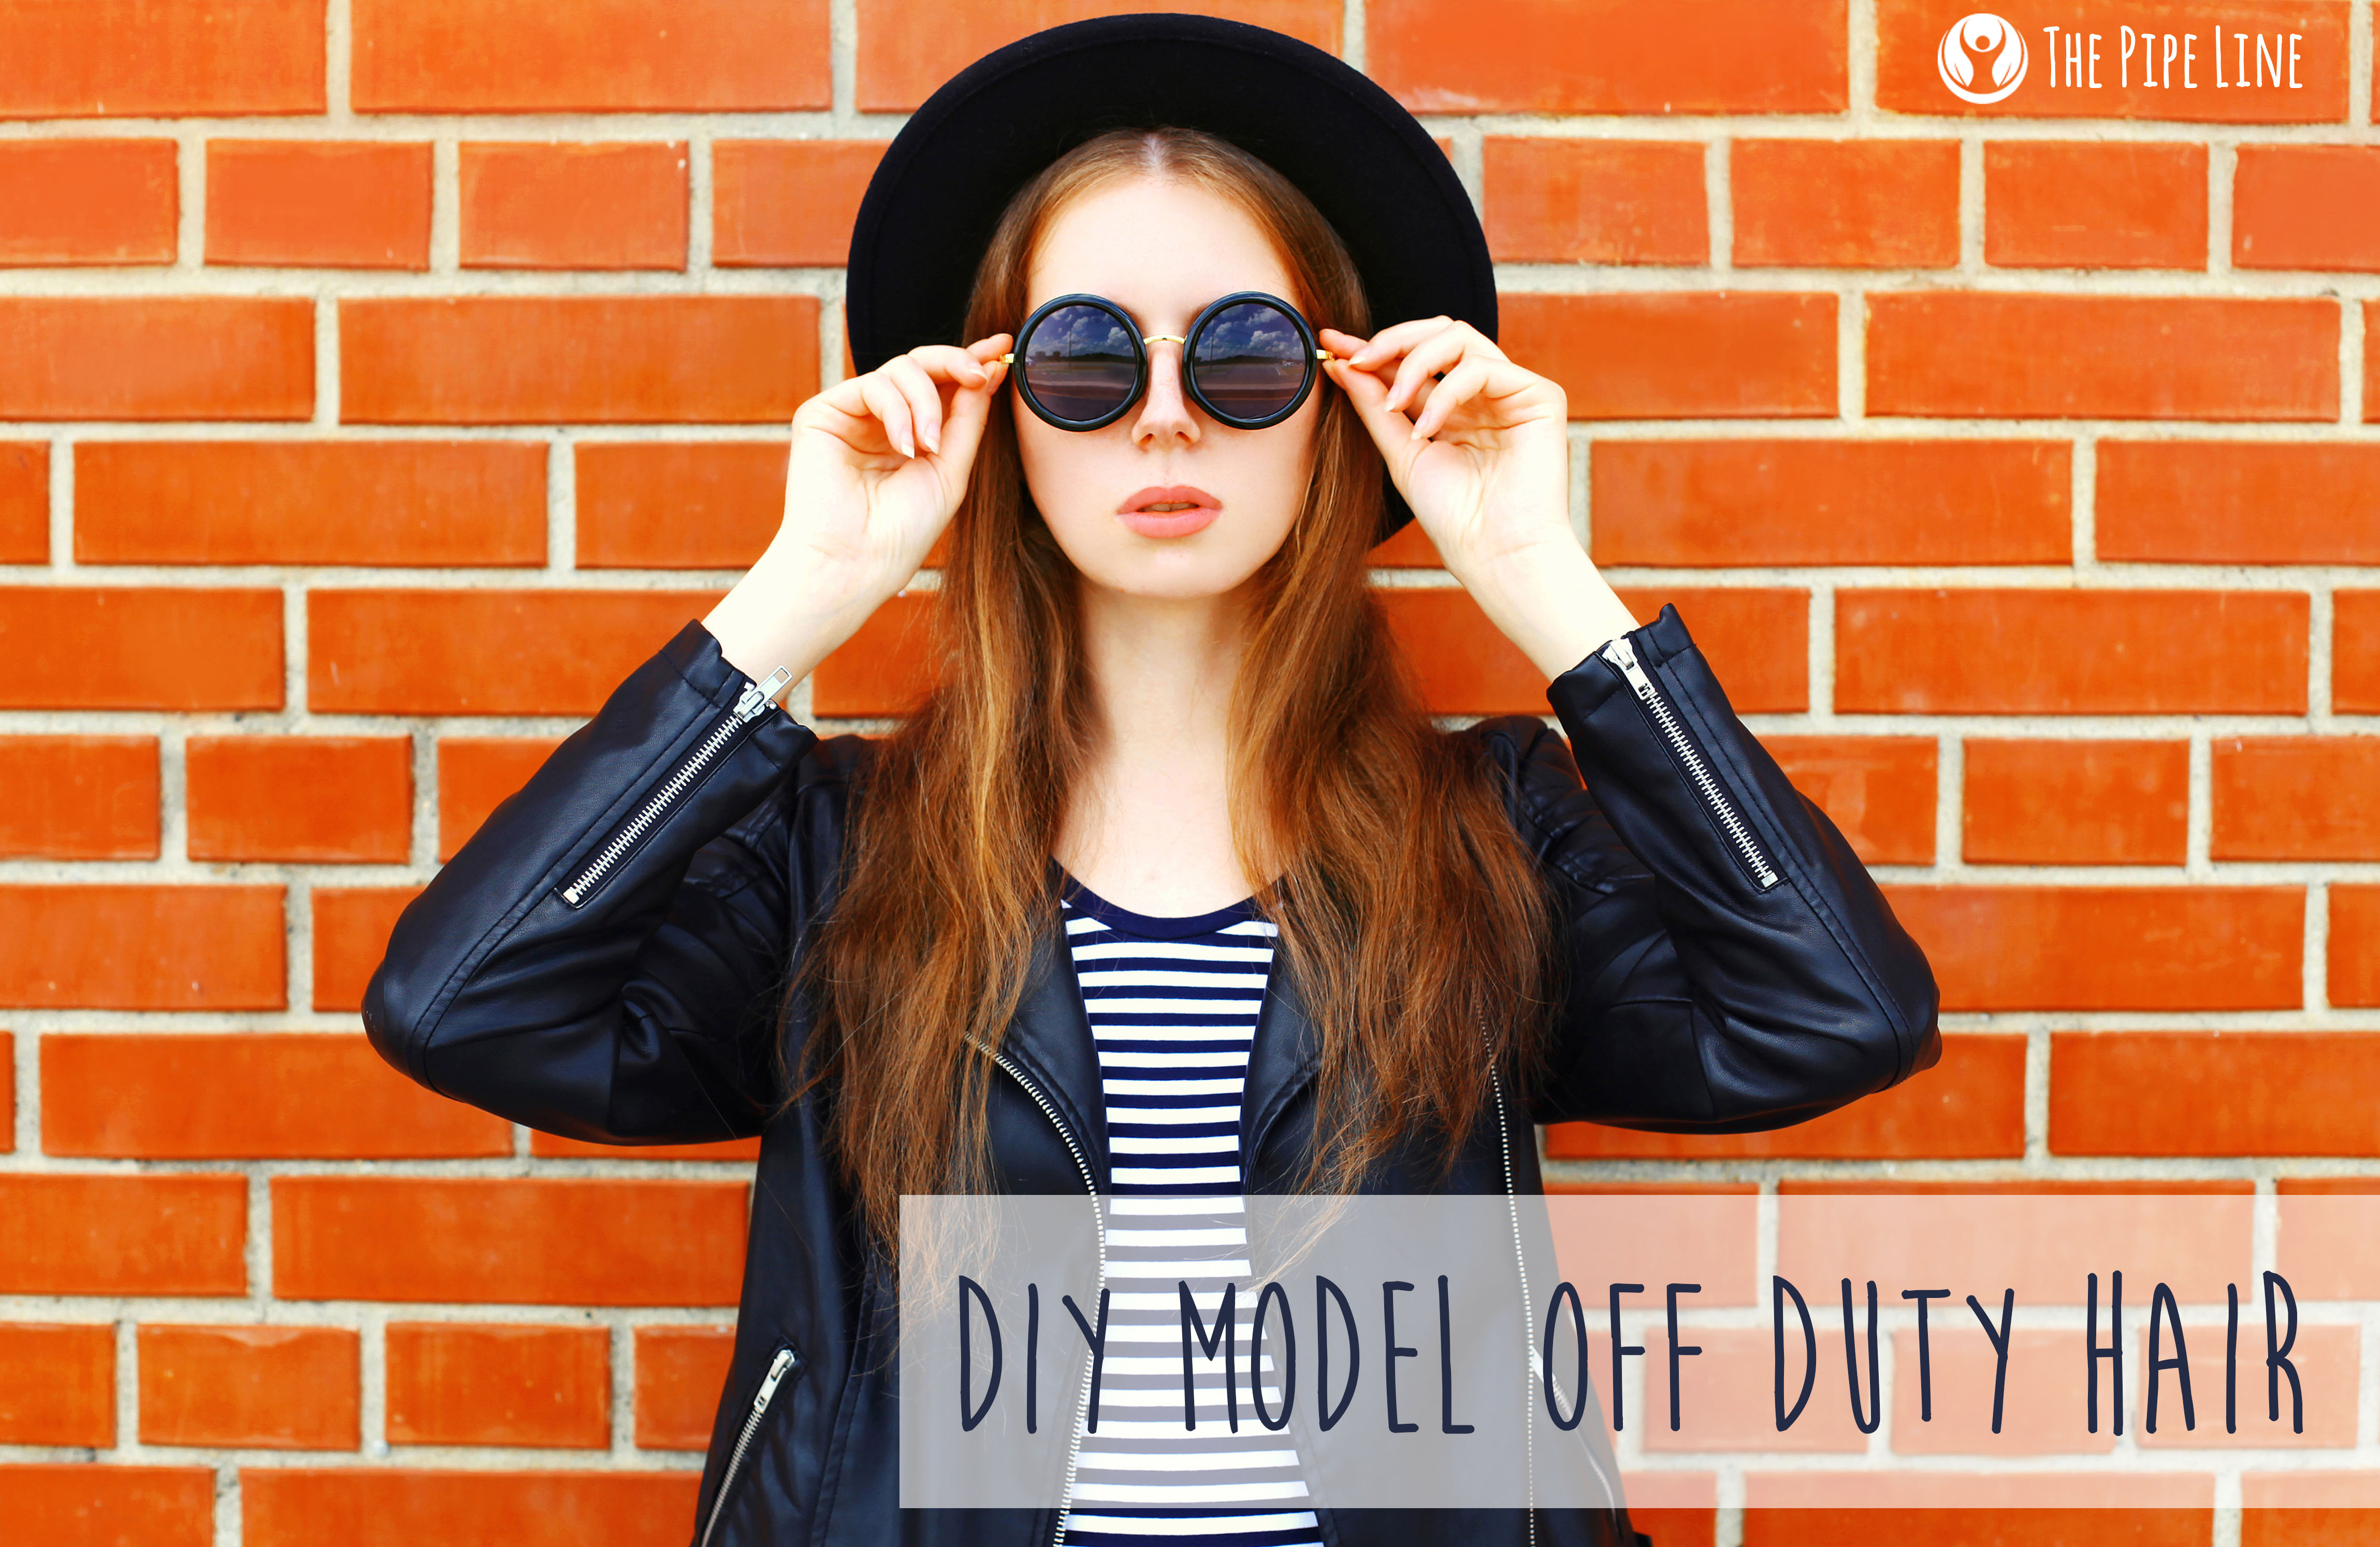 DIY MODEL OFF DUTY HAIR